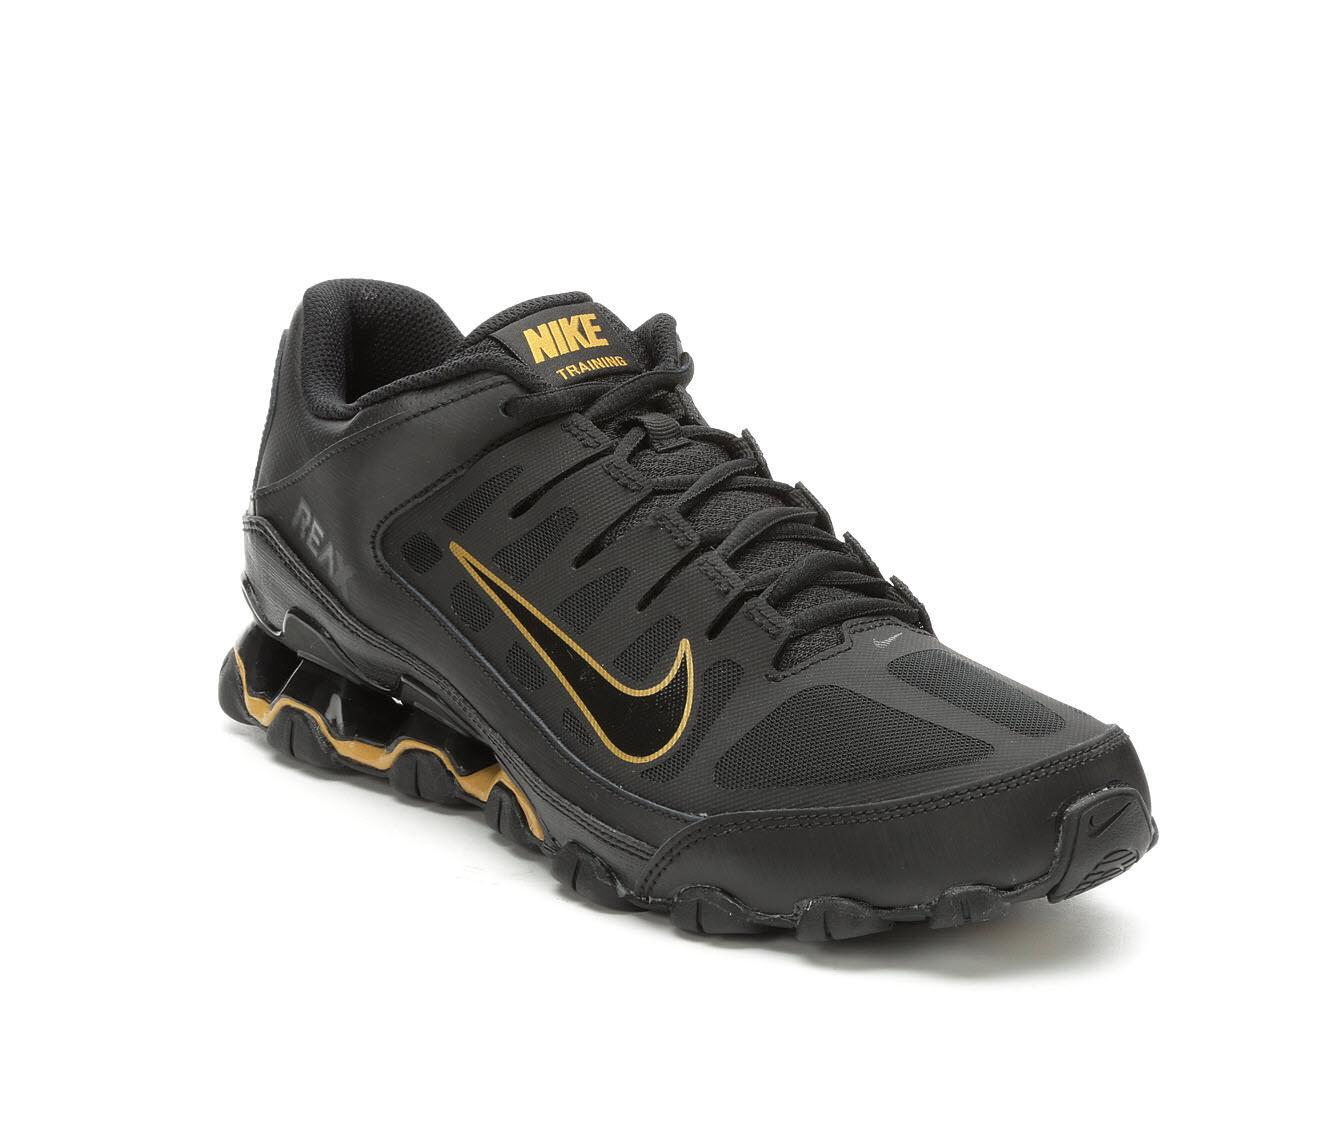 Nike Rubber Reax 8 Tr Training Shoes in